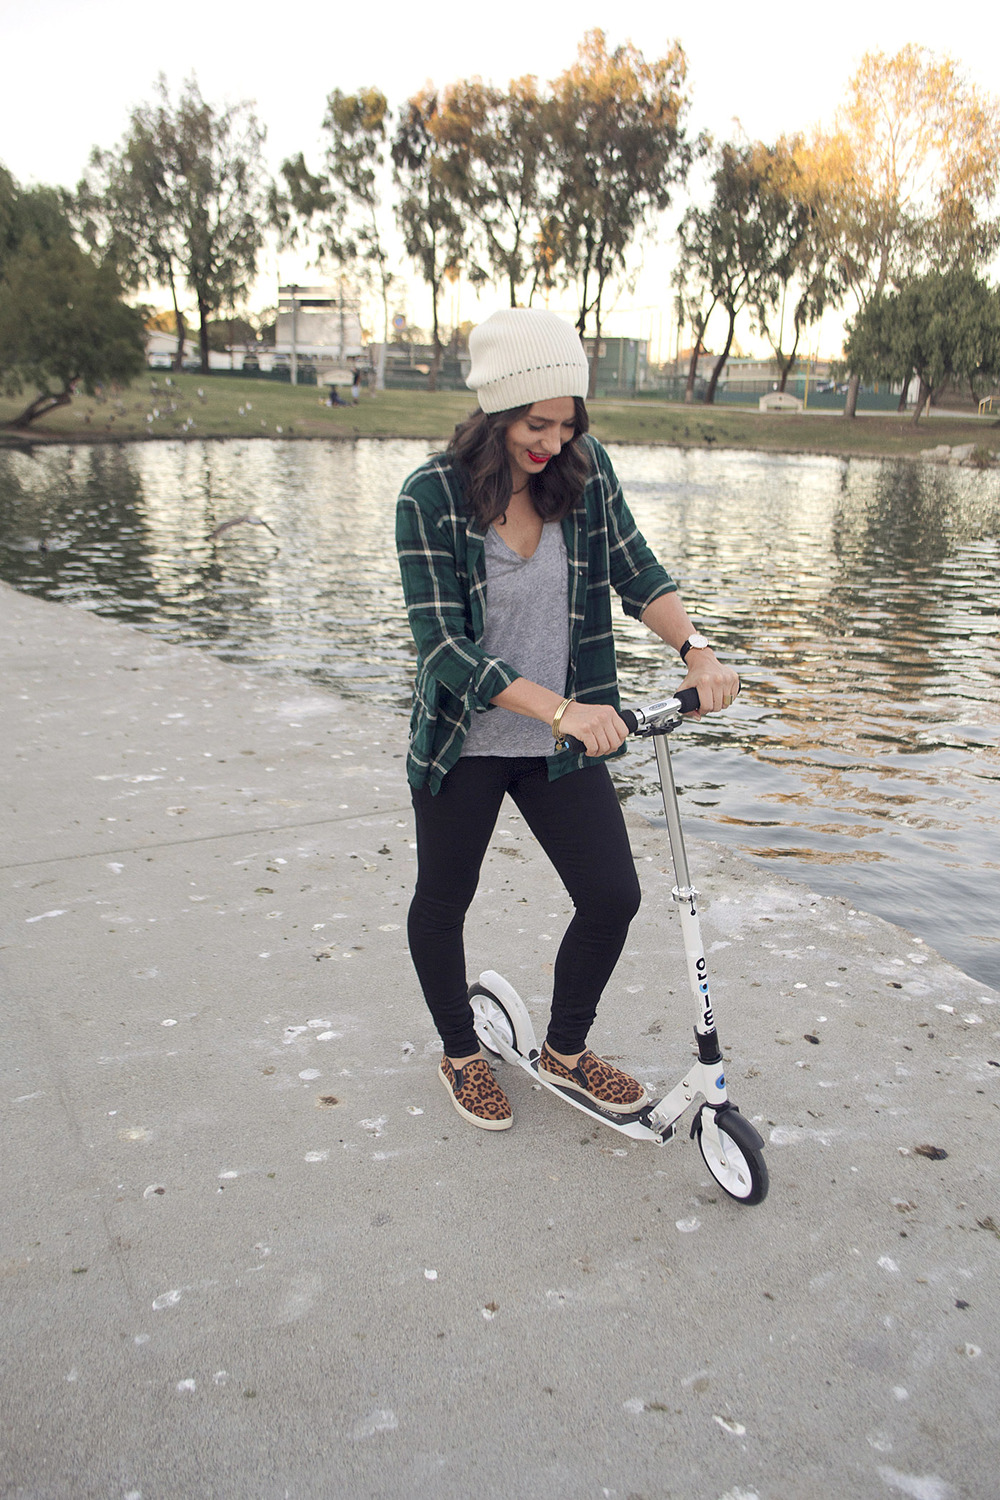 Micro scooter 4.jpg